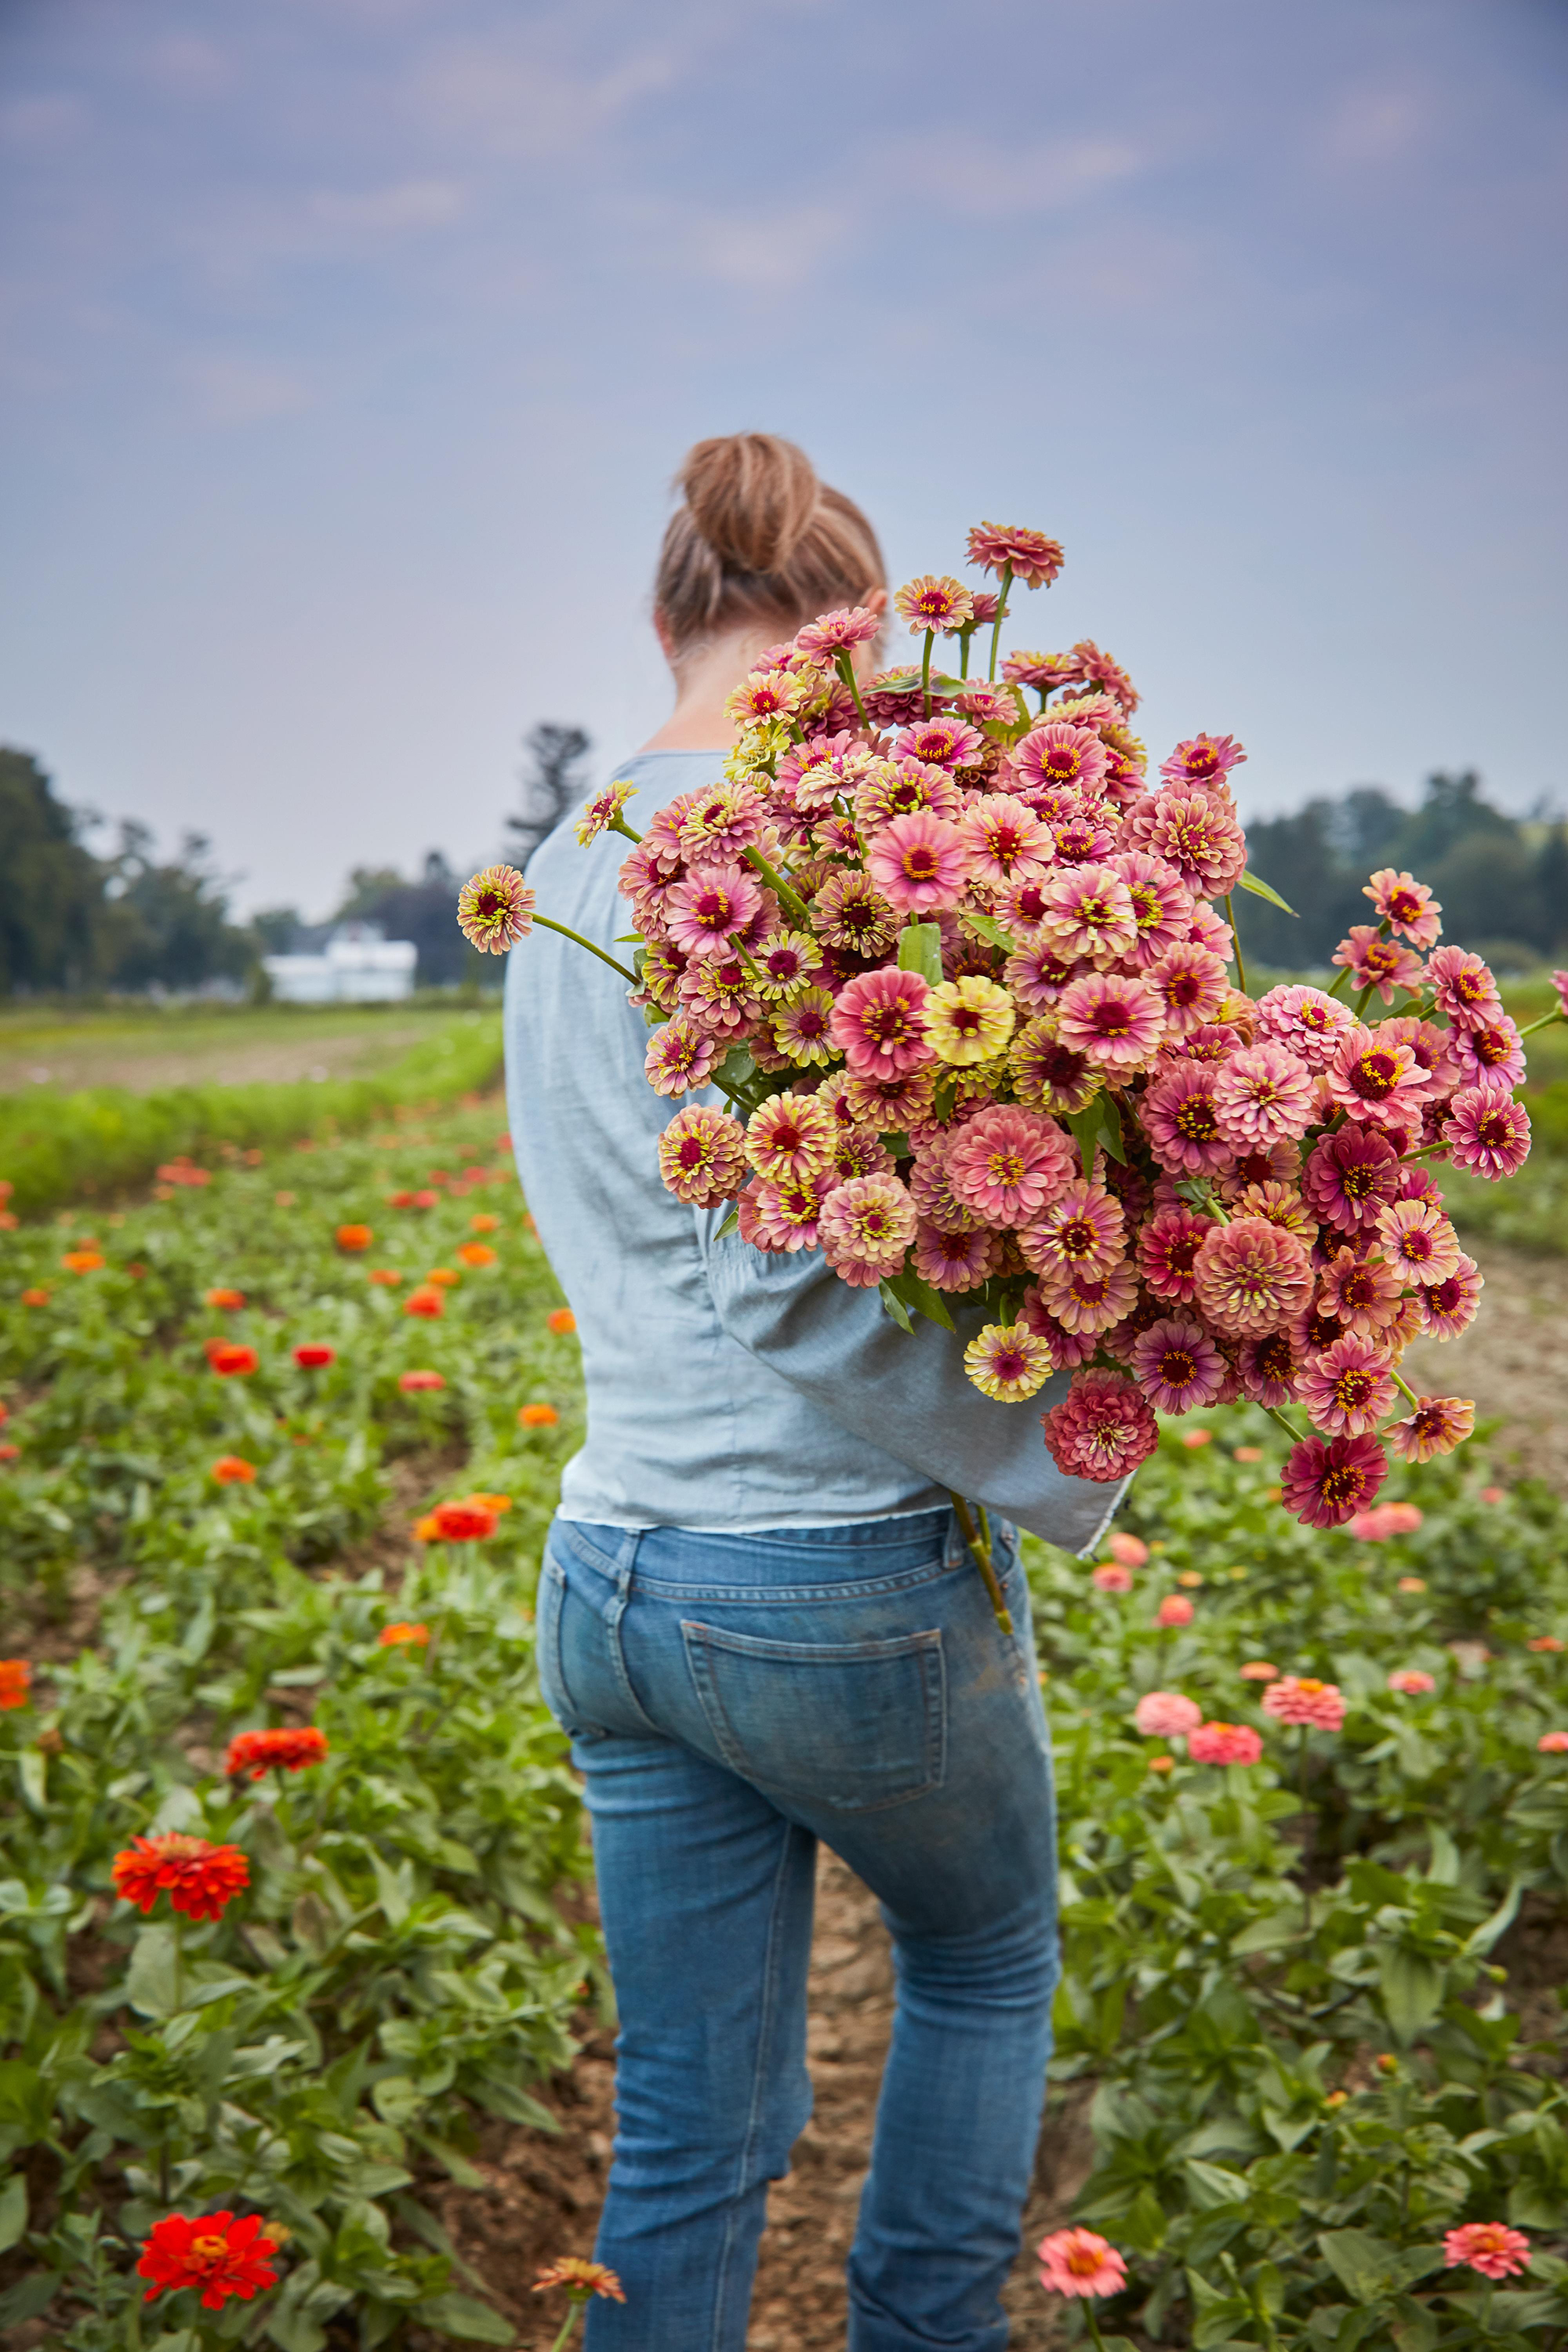 farmer carrying bouquet of flowers